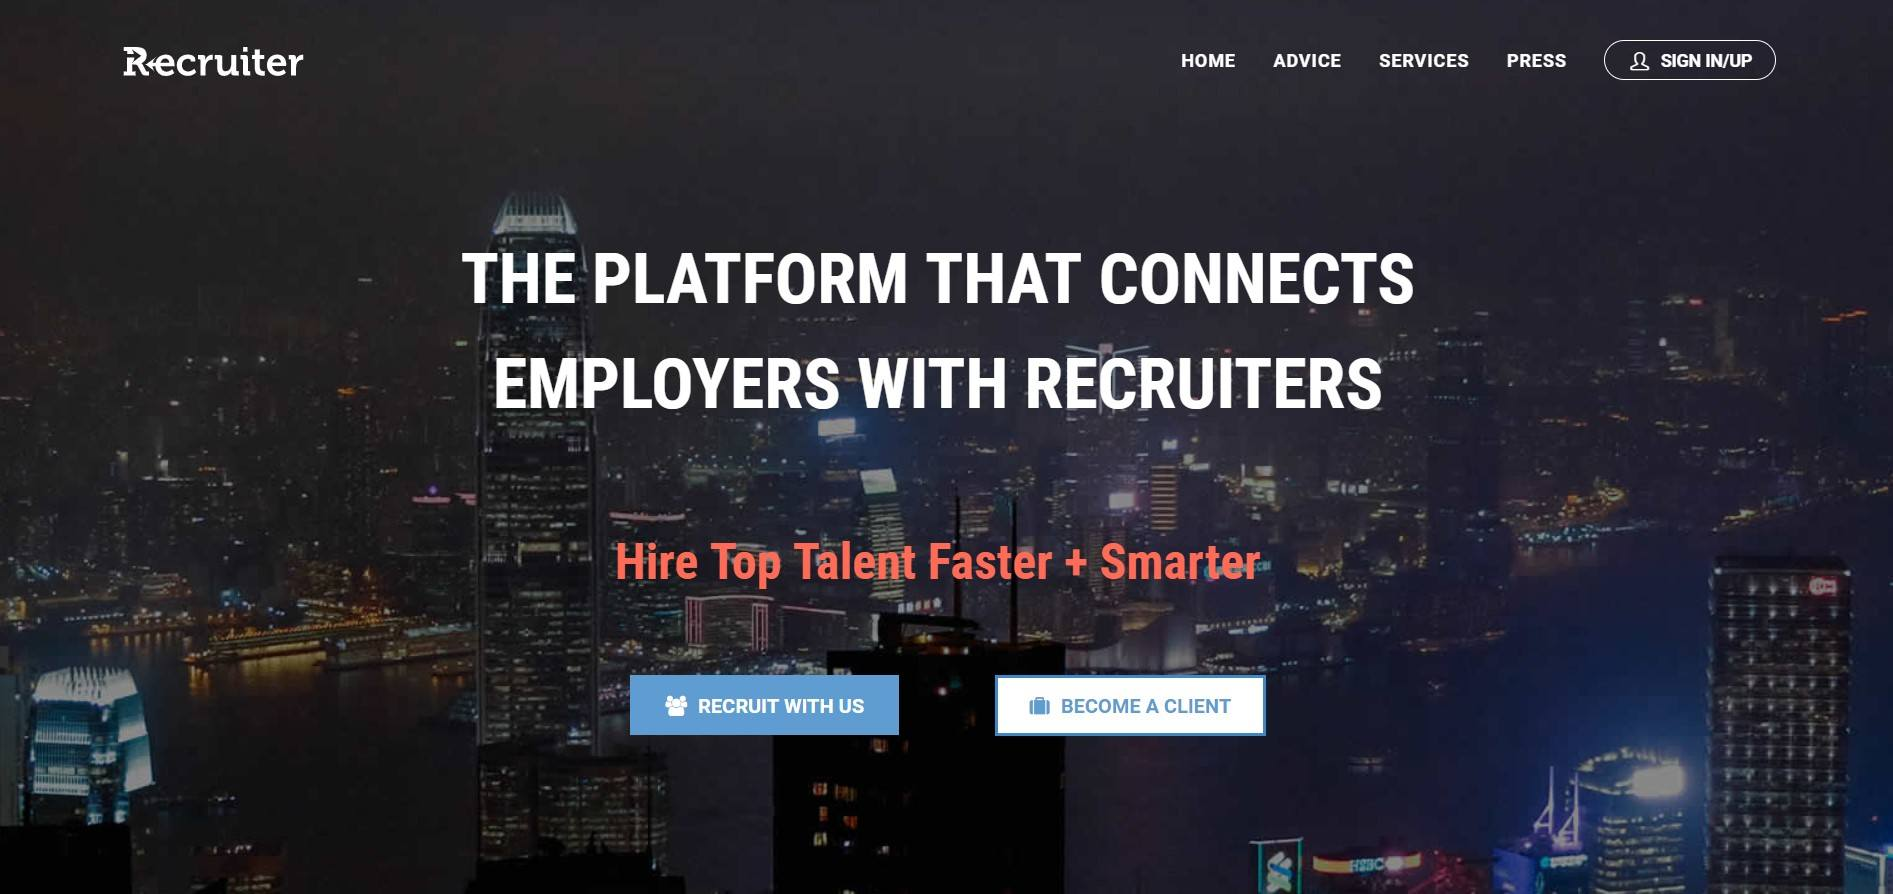 This landing page for Recruiter shows mostly white text on a dark background containing a dim cityscape.